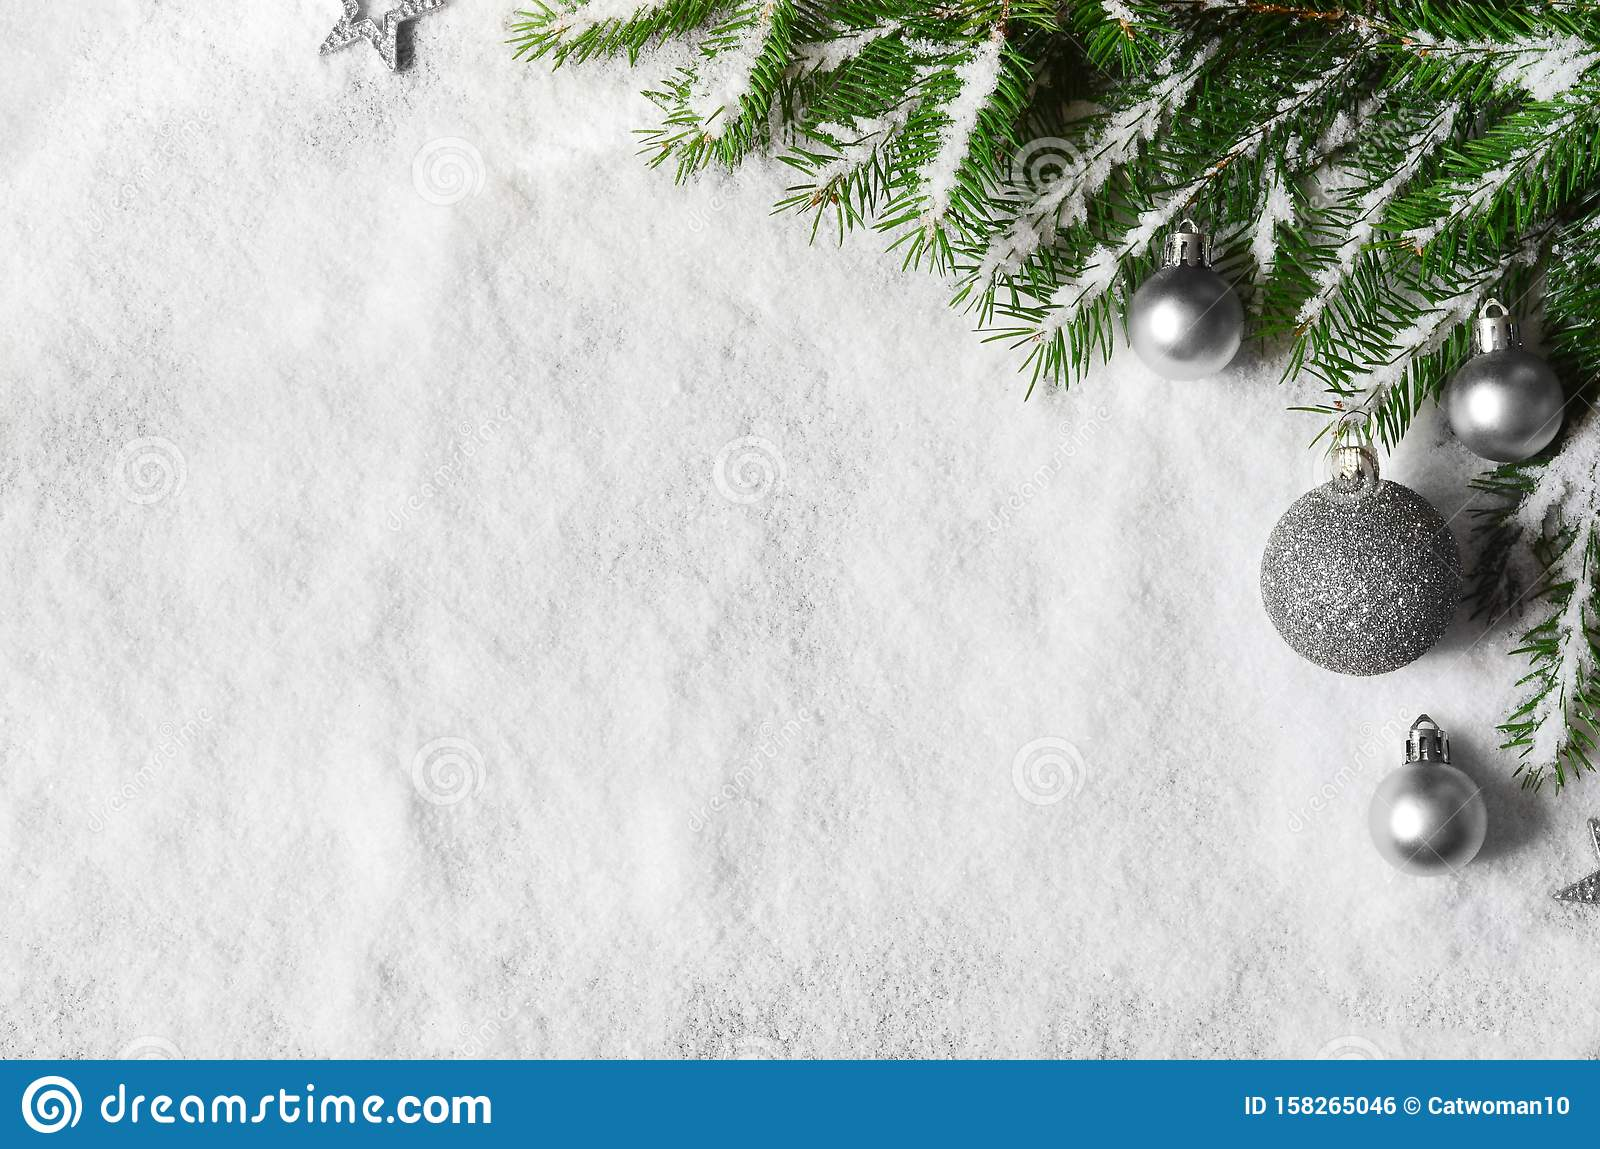 Merry christmas and happy new year greeting background with copy-space. Winter background with snow and christmas light